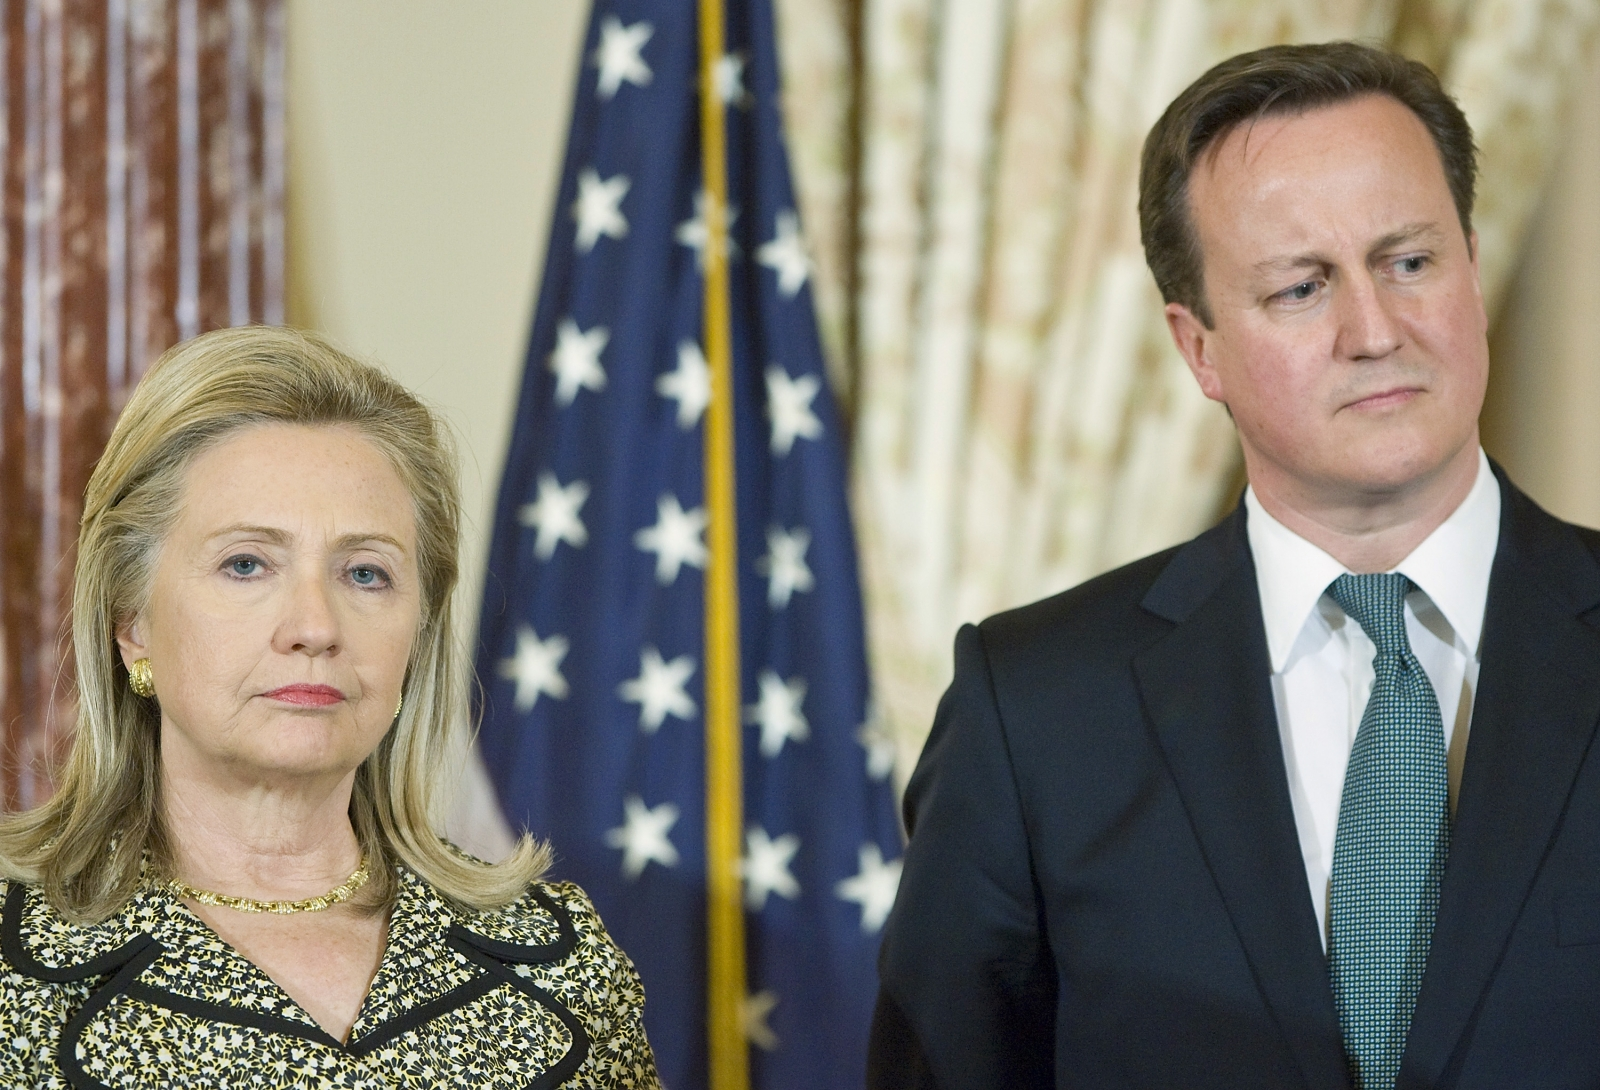 Hillary Clinton leaked mails of Cameron